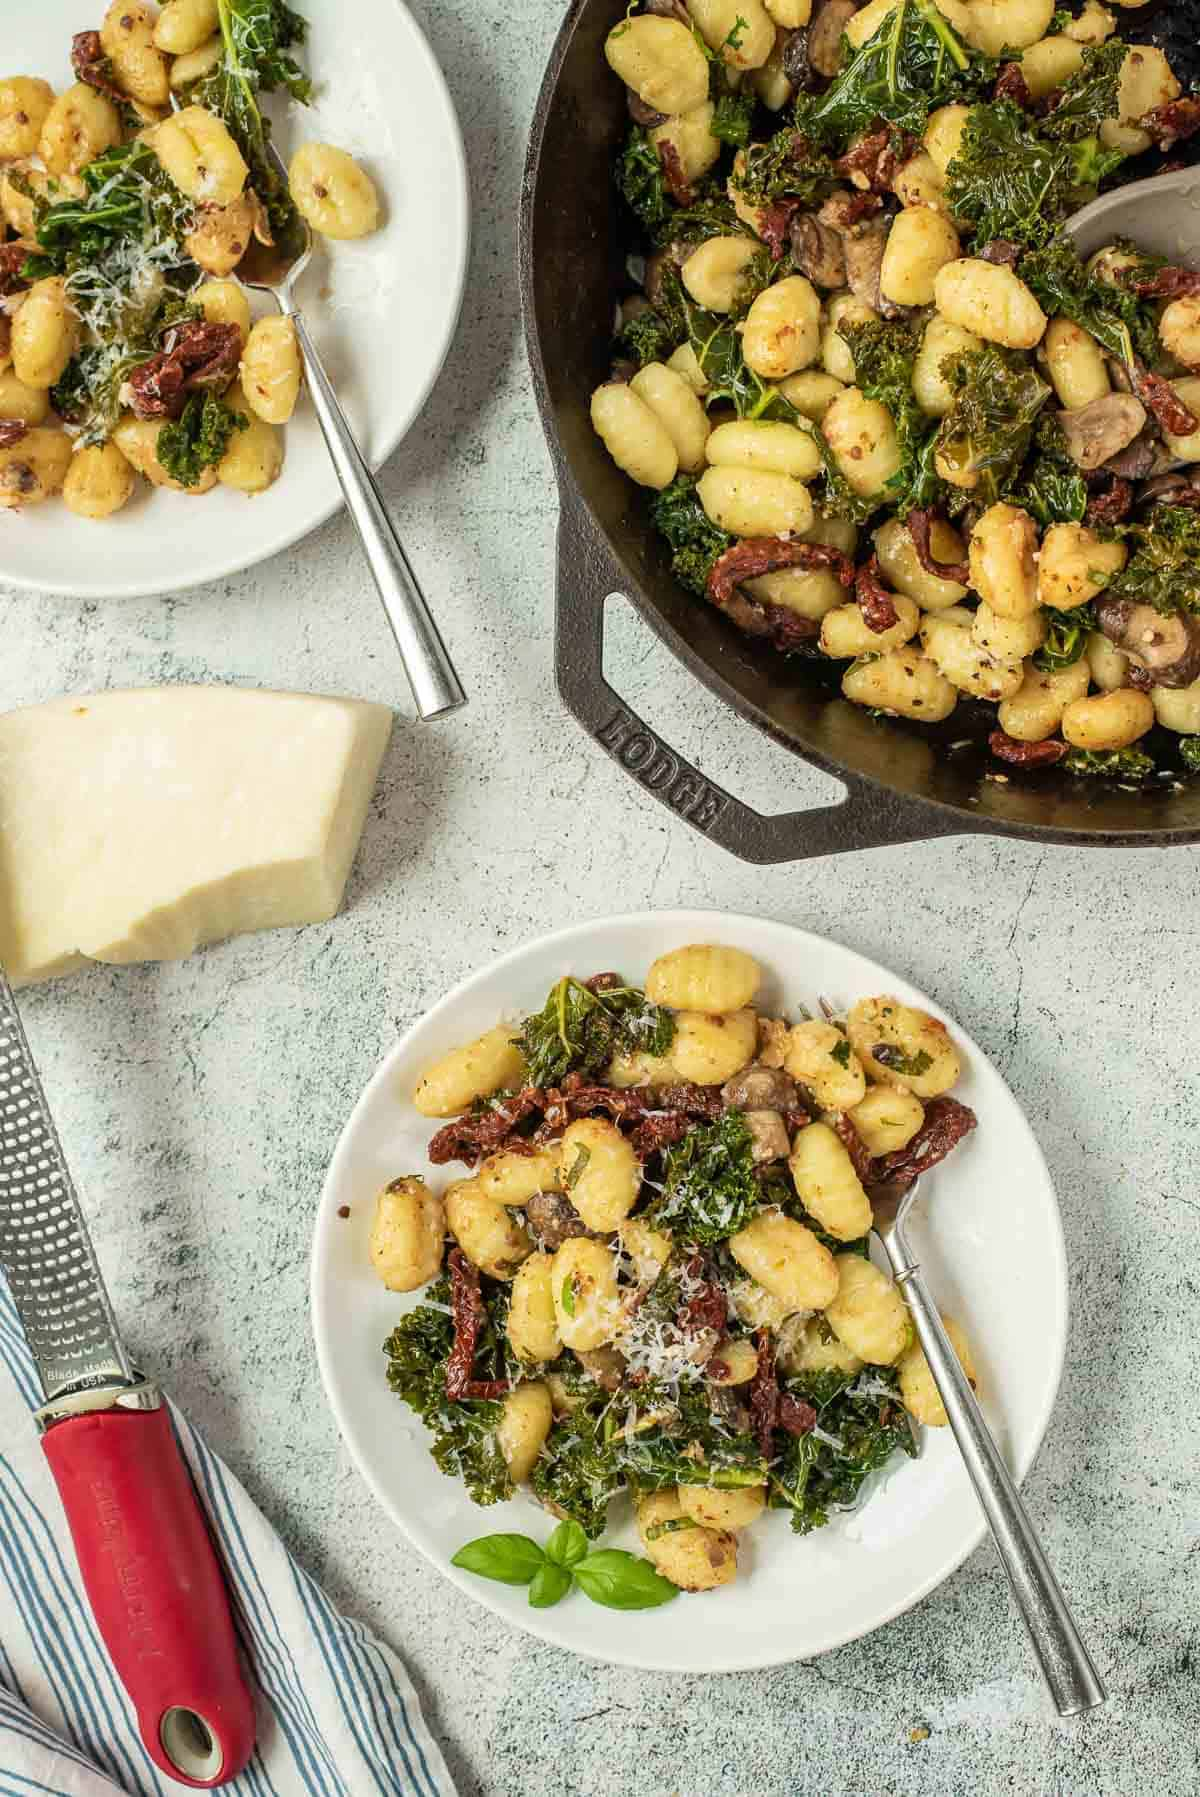 Overhead view of gnocchi with sun-dried tomatoes, kale, and mushrooms.